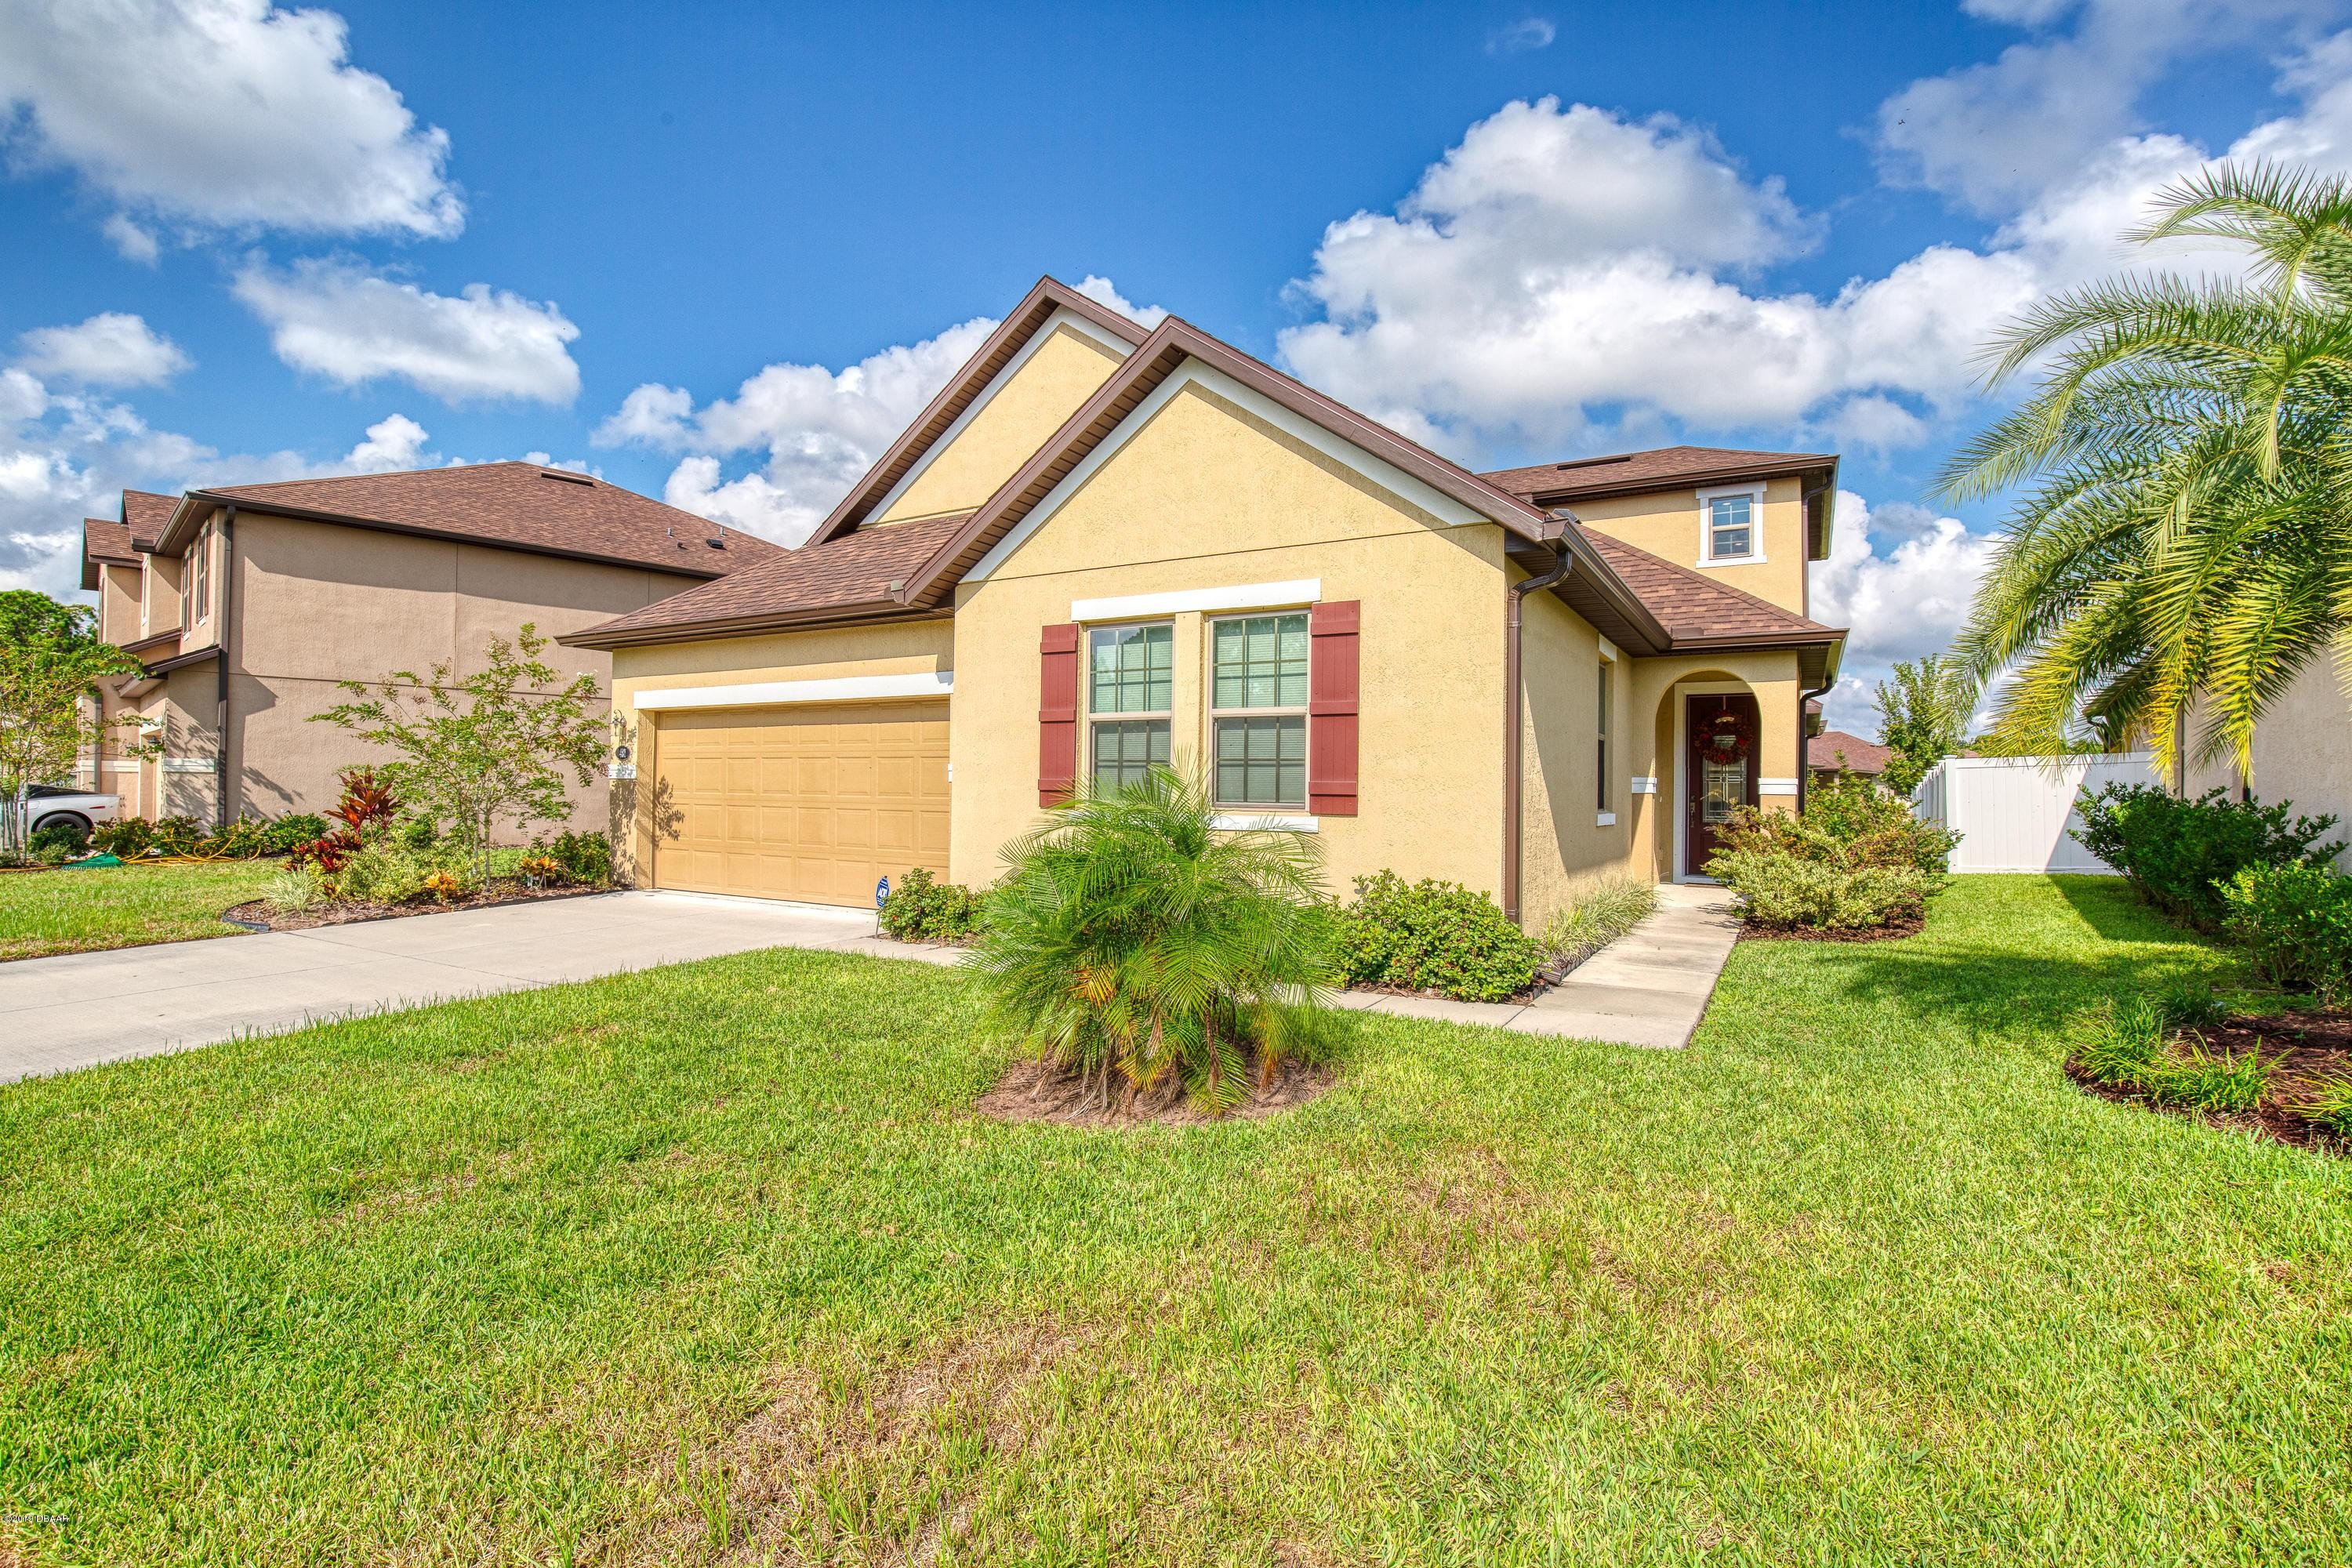 481 Tuscany Chase Dr, one of homes for sale in Holly Hill